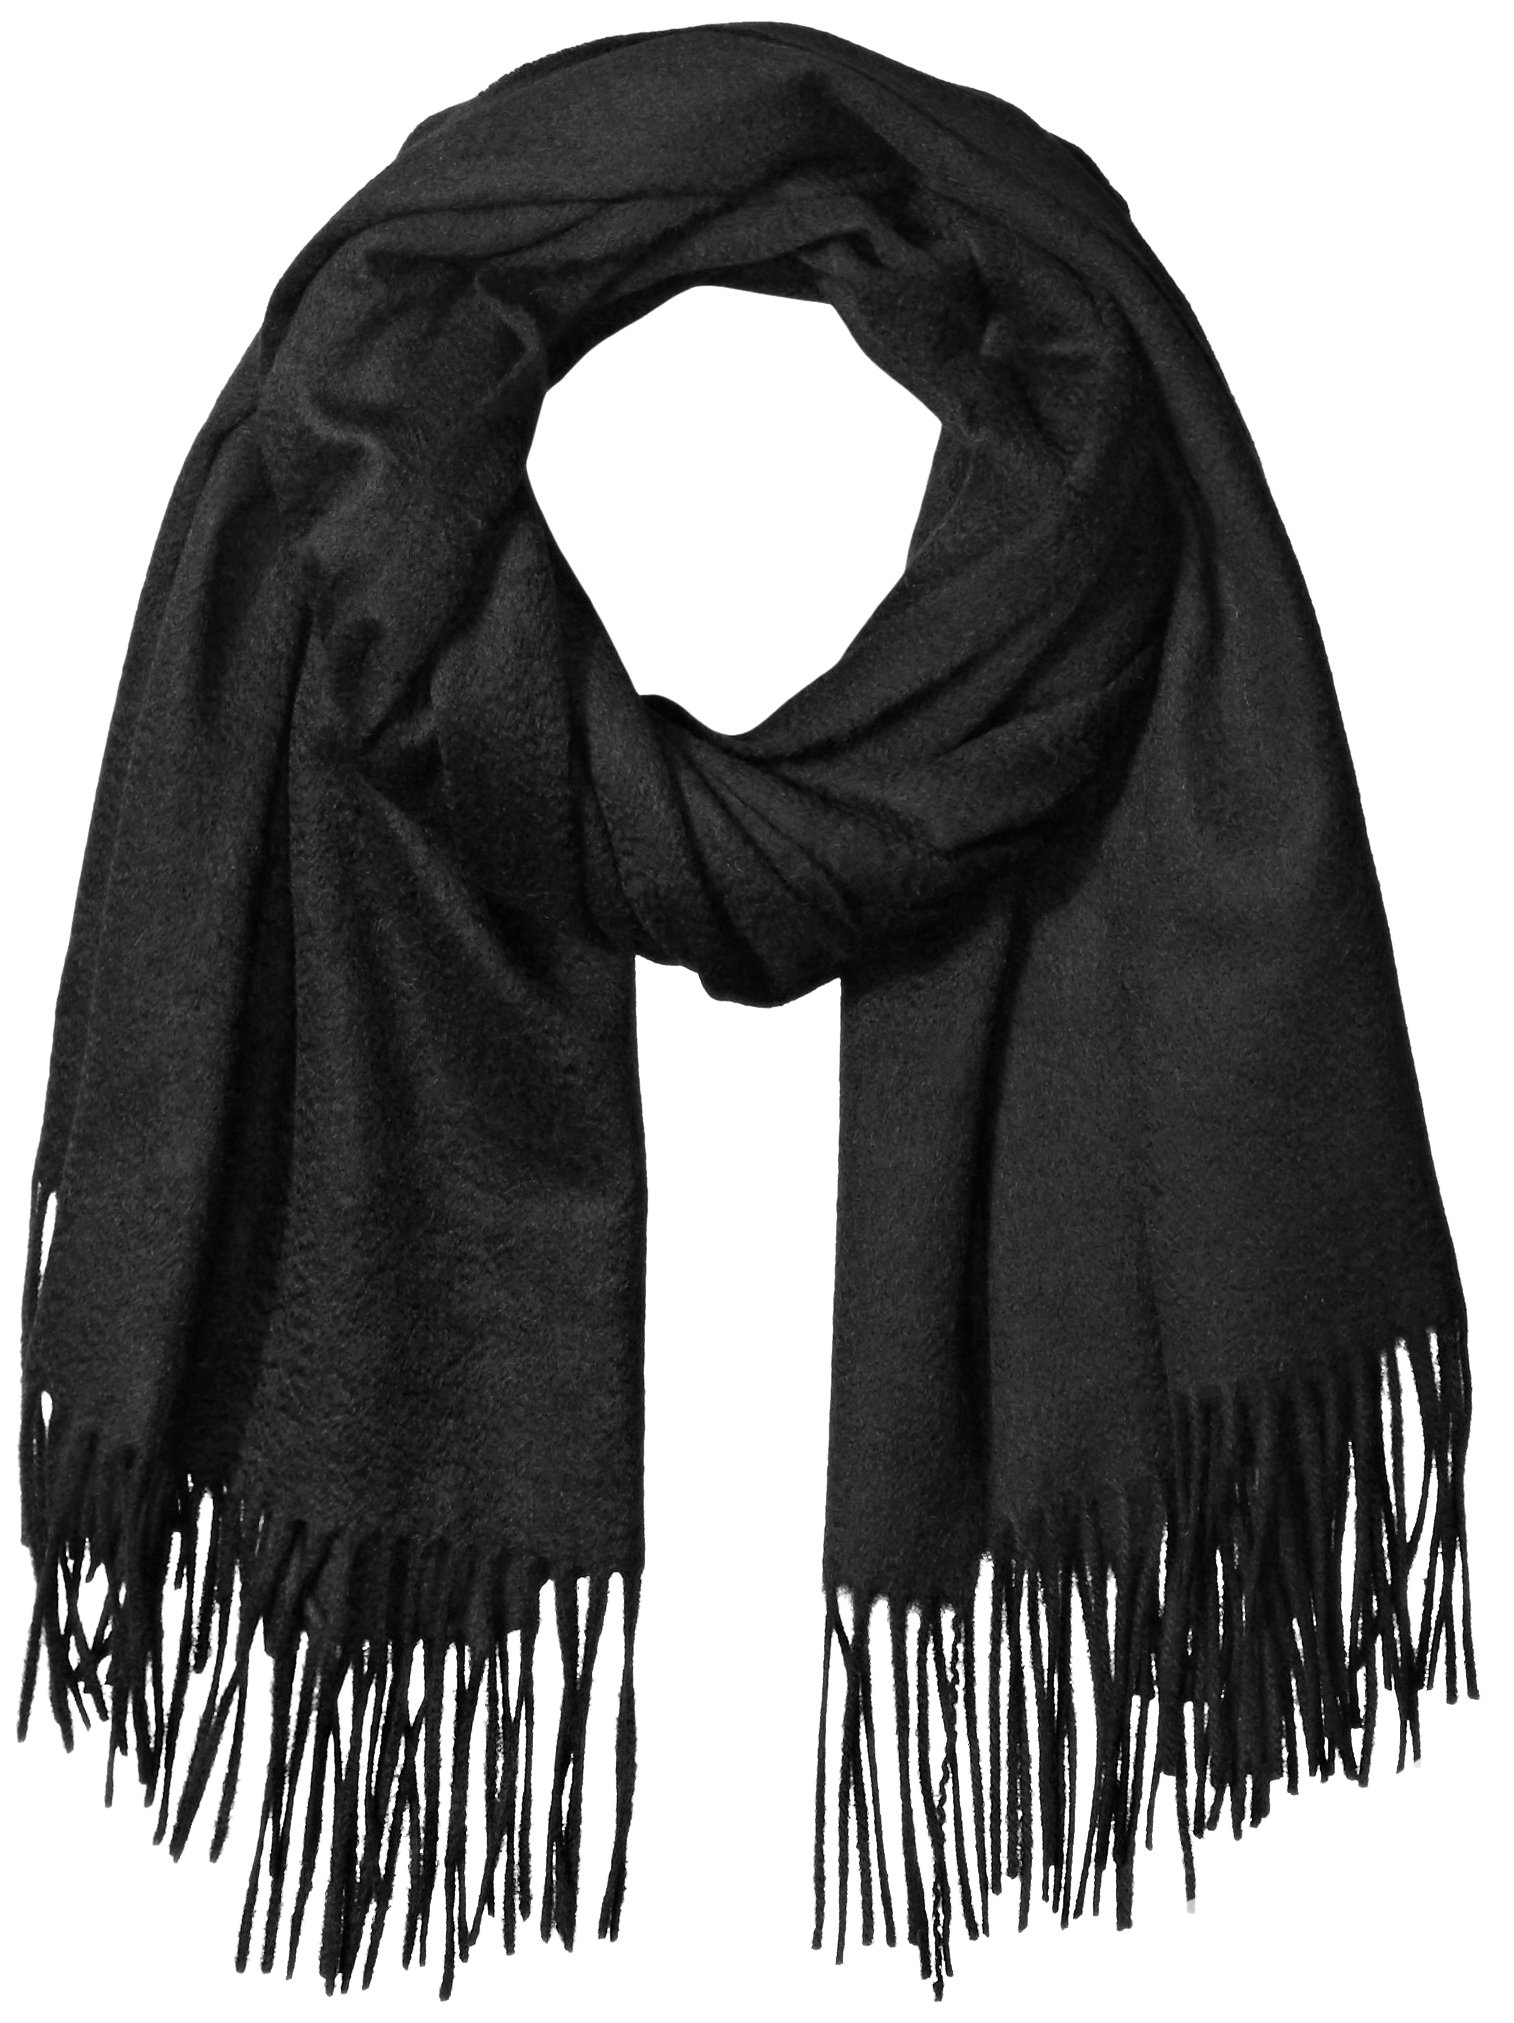 Sofia Cashmere Women's 100% Cashmere Fringed Stole Scarf, Black, One Size by Sofia Cashmere